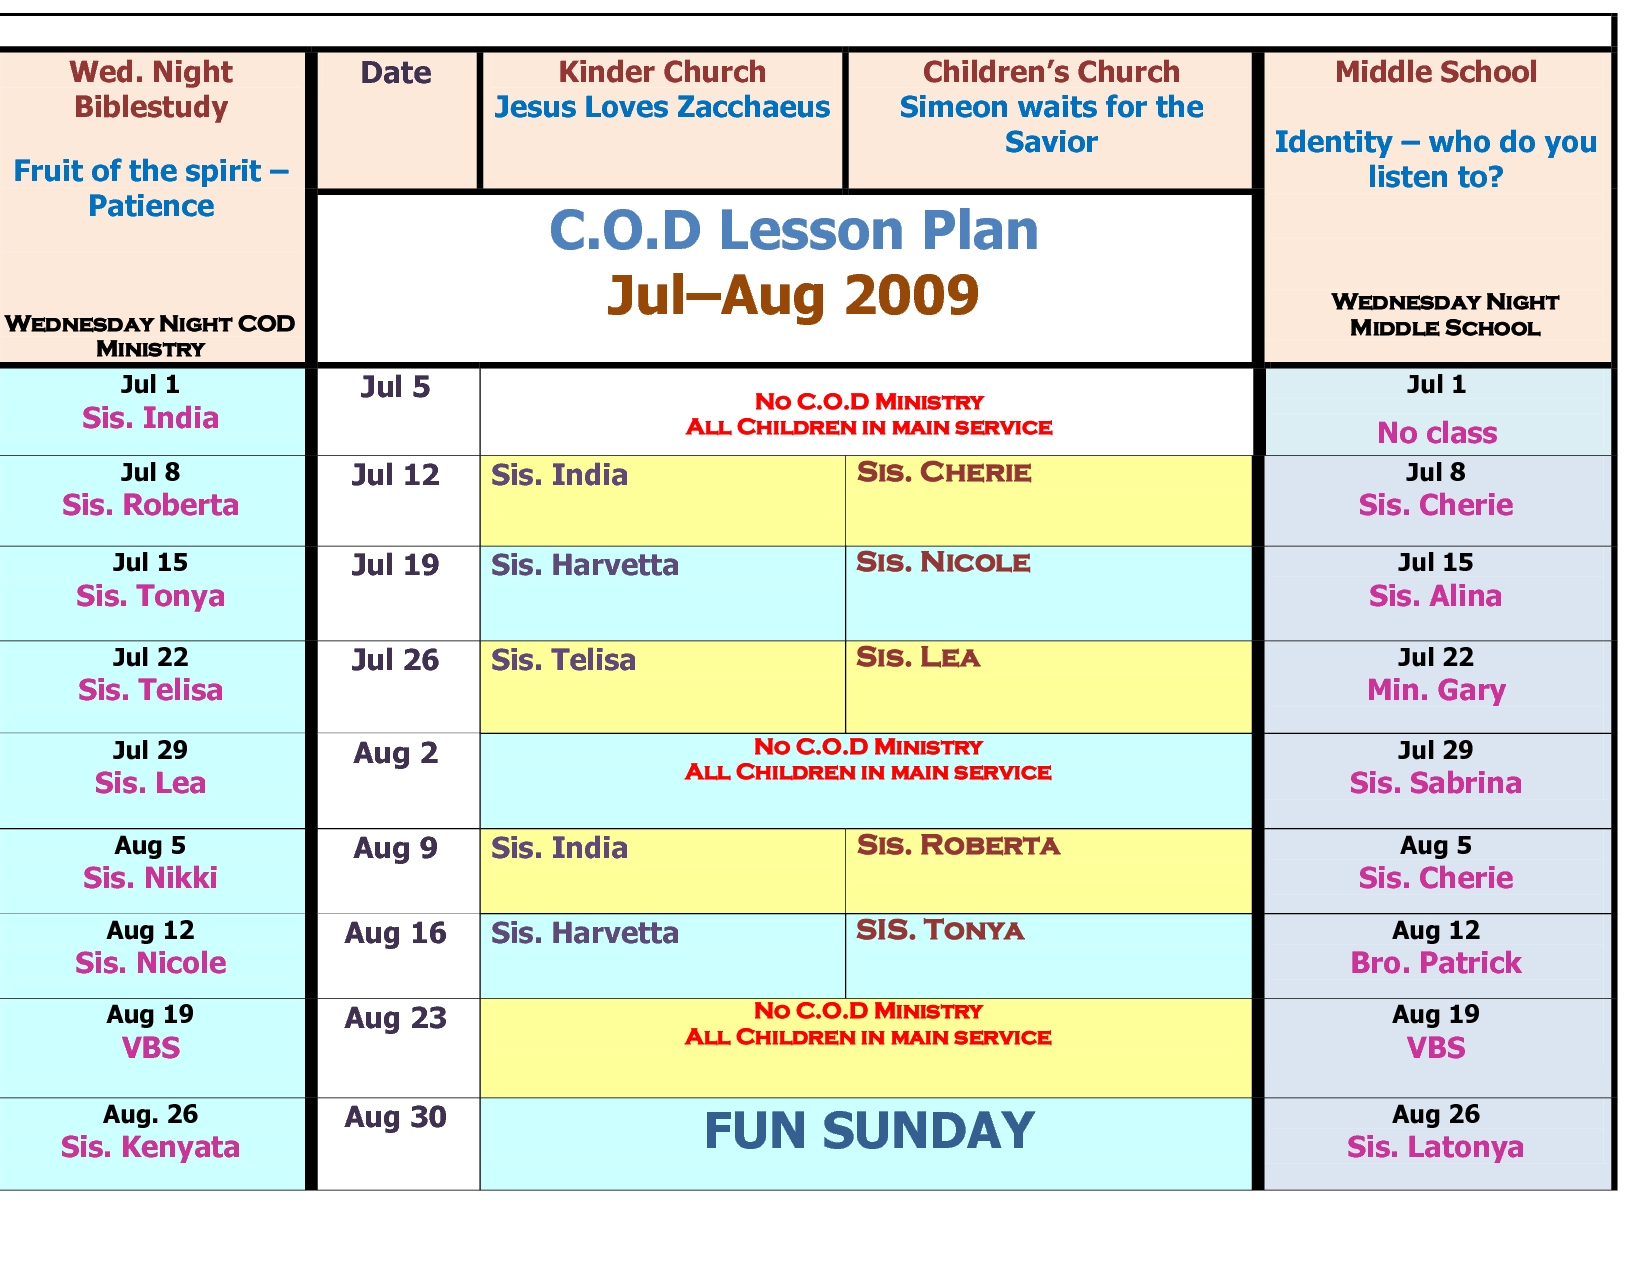 Children's Church Schedule Template - Google Search | Children's within Template For Monthly Calendar Lesson Plans For Childrens Church